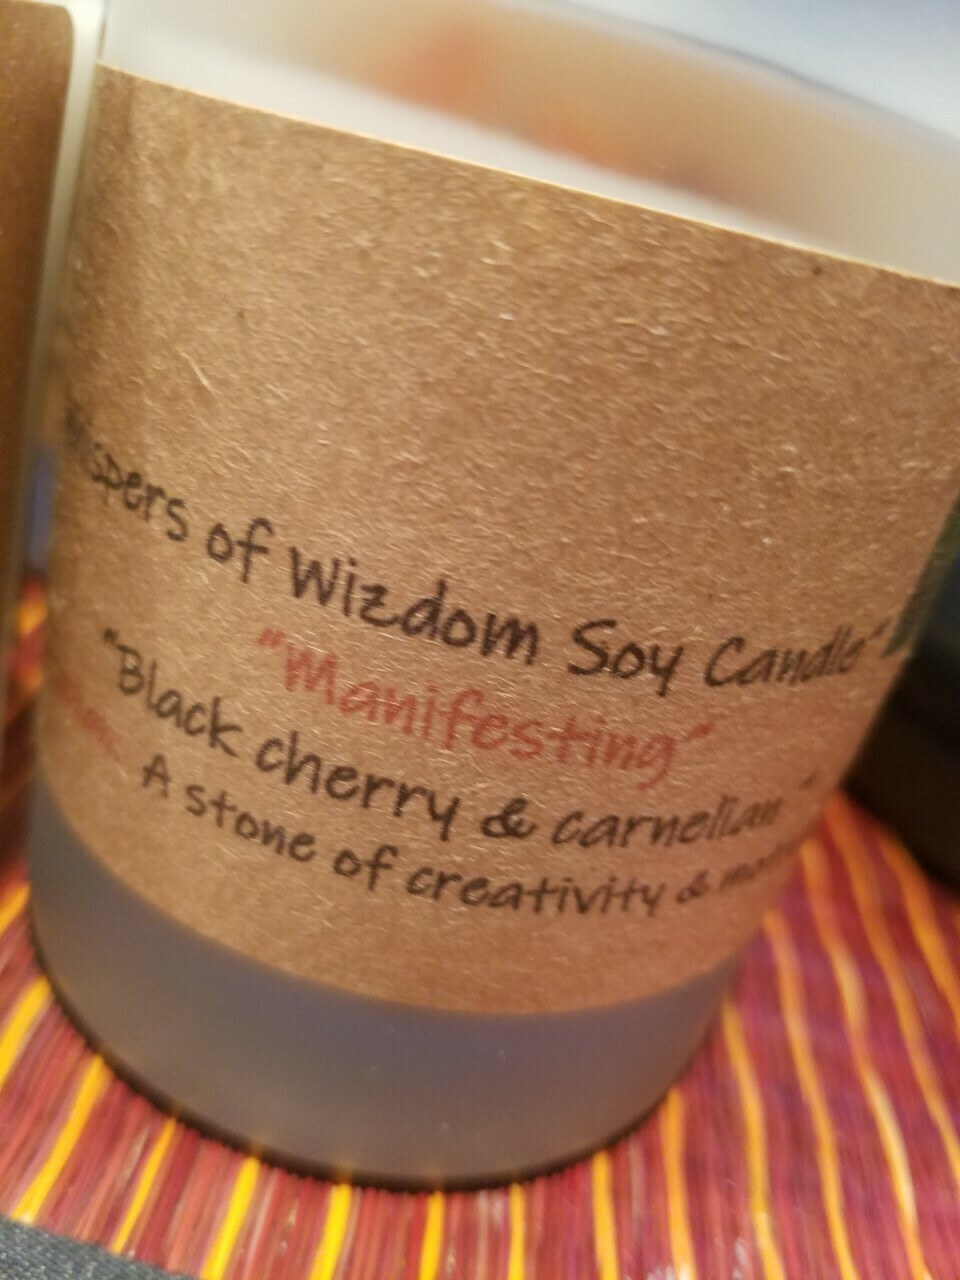 Judy's Soy Candle -Manifesting -Black Cherry (Pick up only)